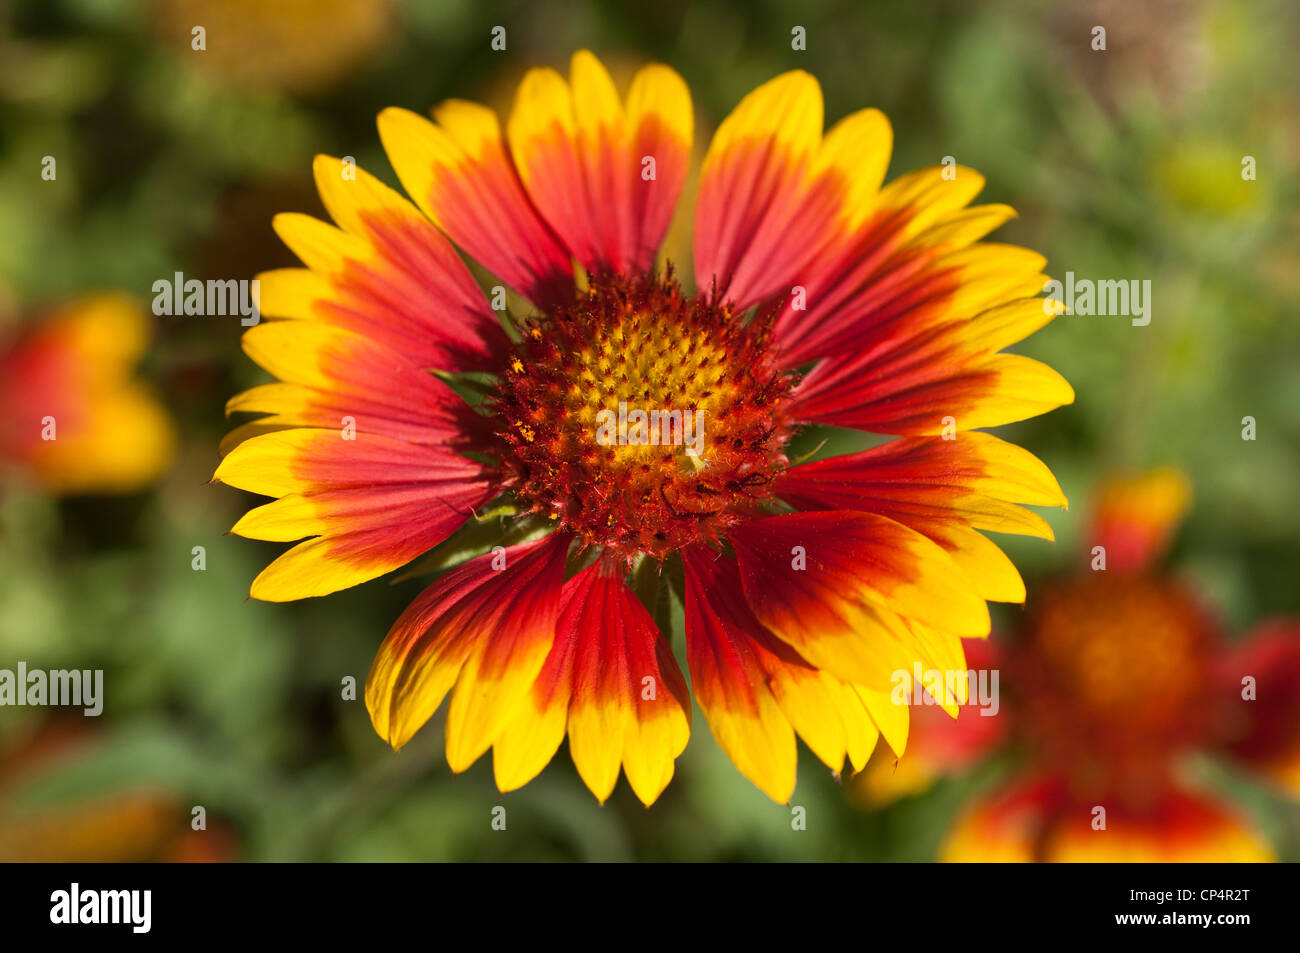 Yellow And Red Flower Close Up Of Common Blanket Flower Stock Photos